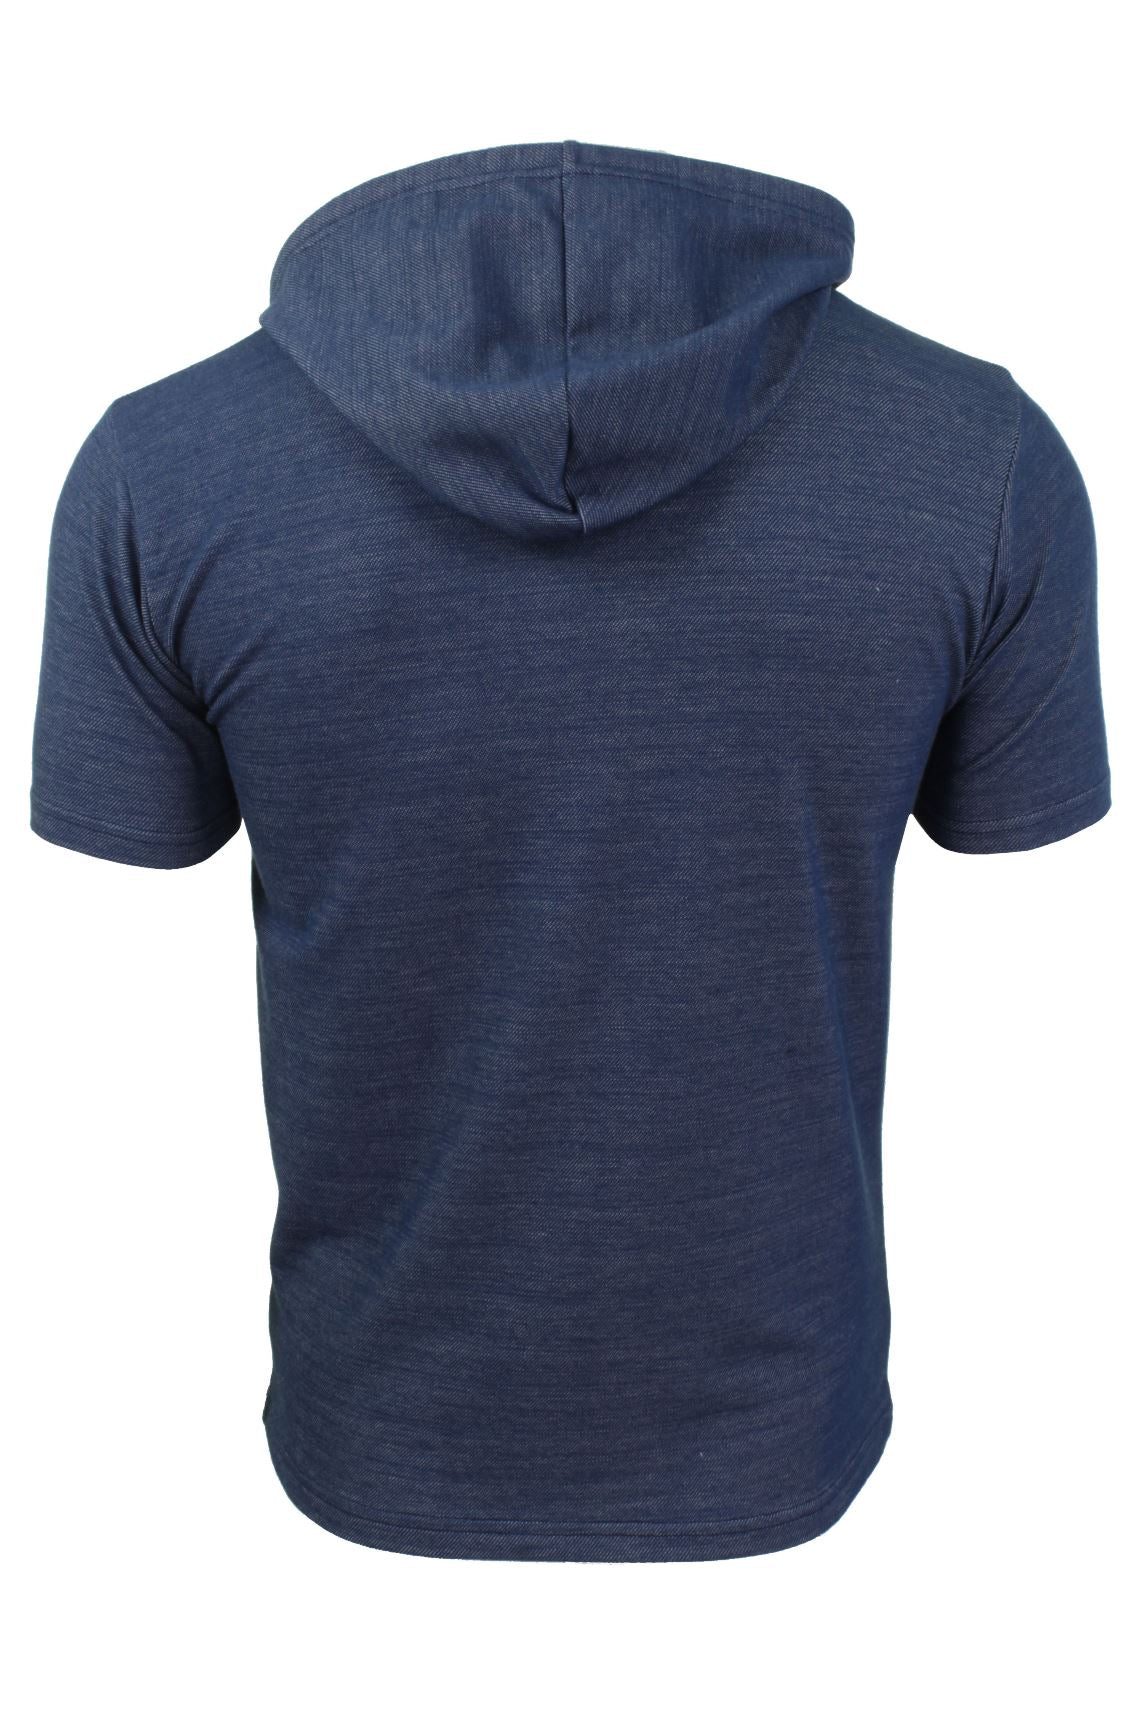 Mens Hoodie T-Shirt by Xact Short Sleeved_03_XTE1019_Navy